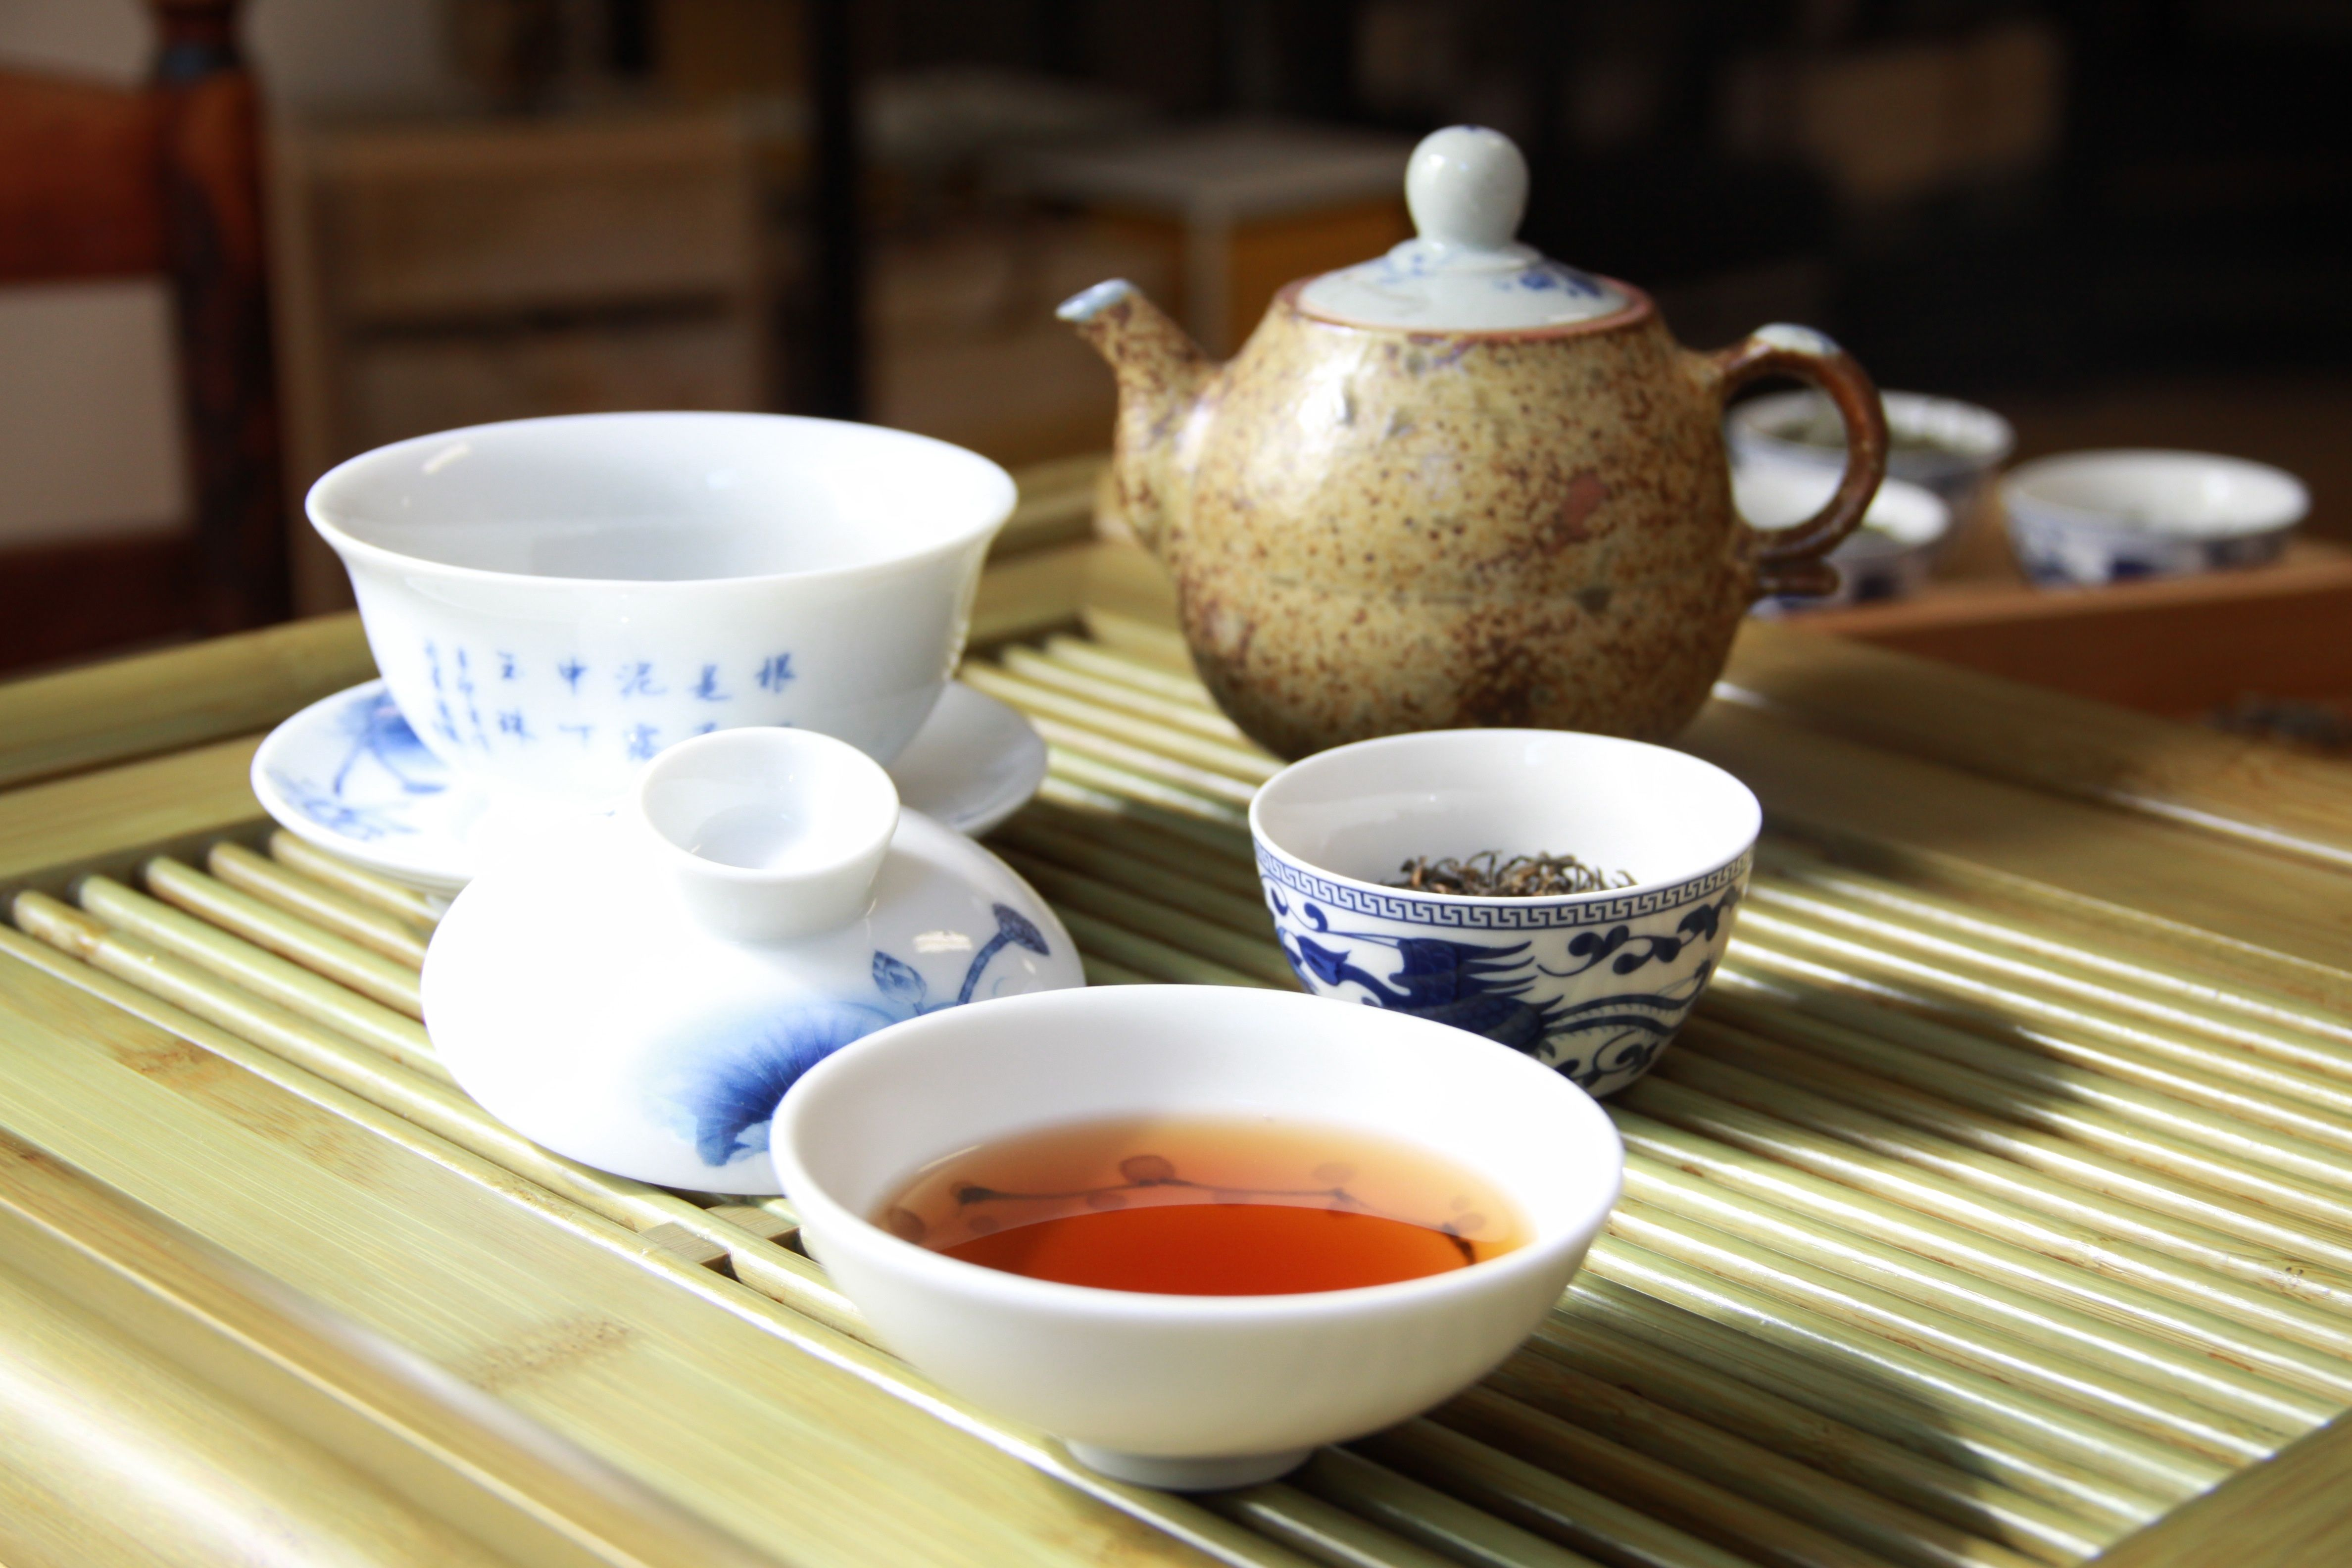 Ripened Pu'er tea. Fermentation and oxidation processed. Vividly red color. Aging creates better flavor.  Healthy tea as it could rise up the HDL which is the good cholesterol, and reduce the level of bad cholesterol LDL in blood. Also it helps reduce the blood sugar level etc.